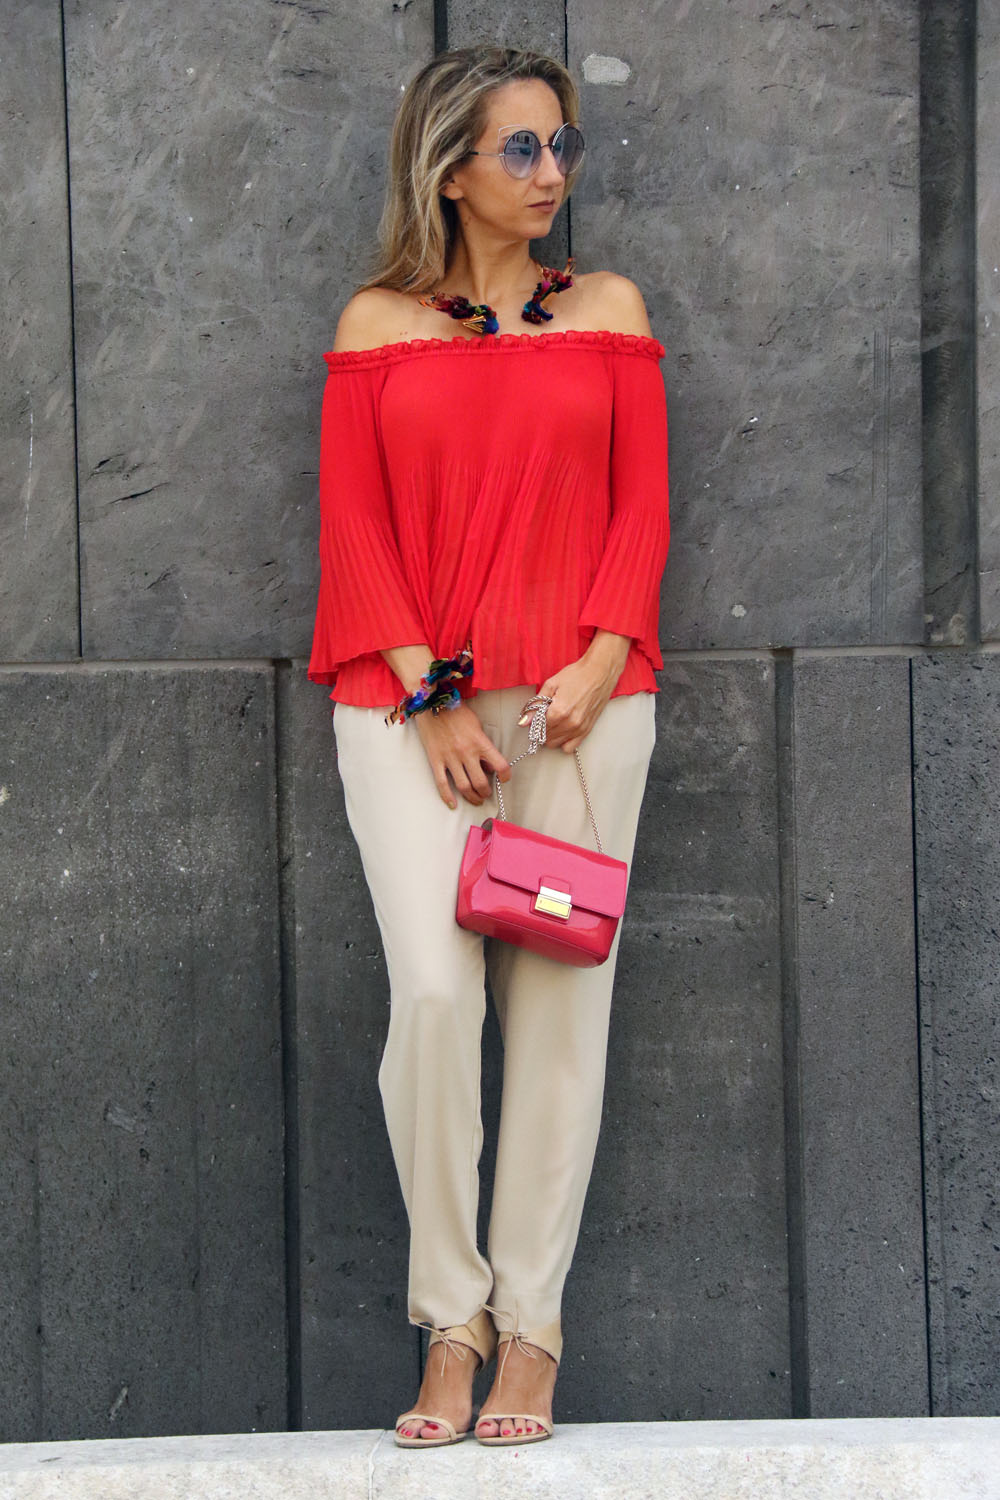 colourclub-modeblog-outfit-off-the-shoulder-top-burberry-shoes-furla-bag-thai-silk-juwelery-ornaments-lor3